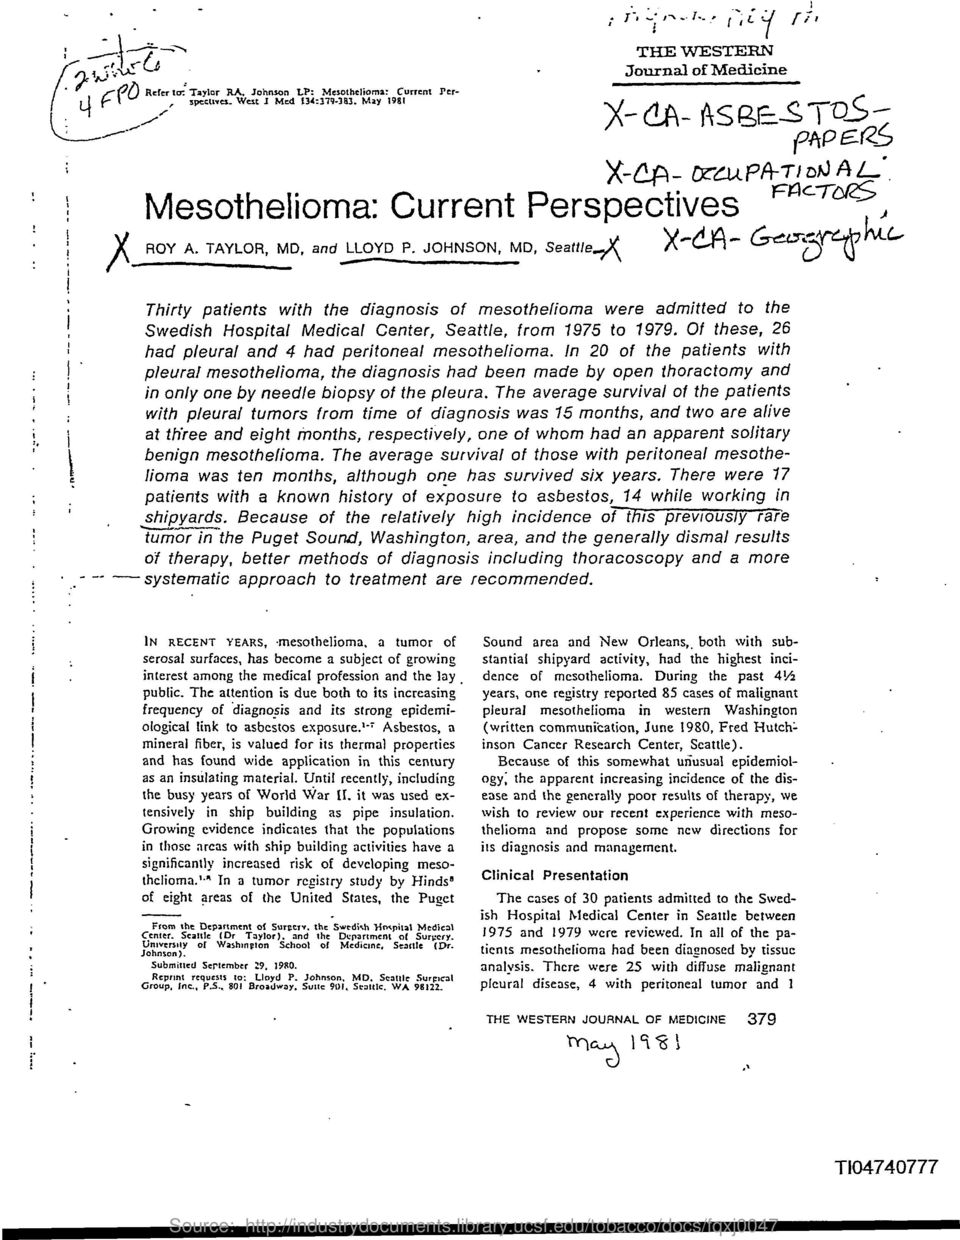 TAYLOR, MD, and Thirty patients with the diagnosis of mesothelioma were admitted to the Swedish Hospital Medical Center, Seattle, from 1975 to 1979.